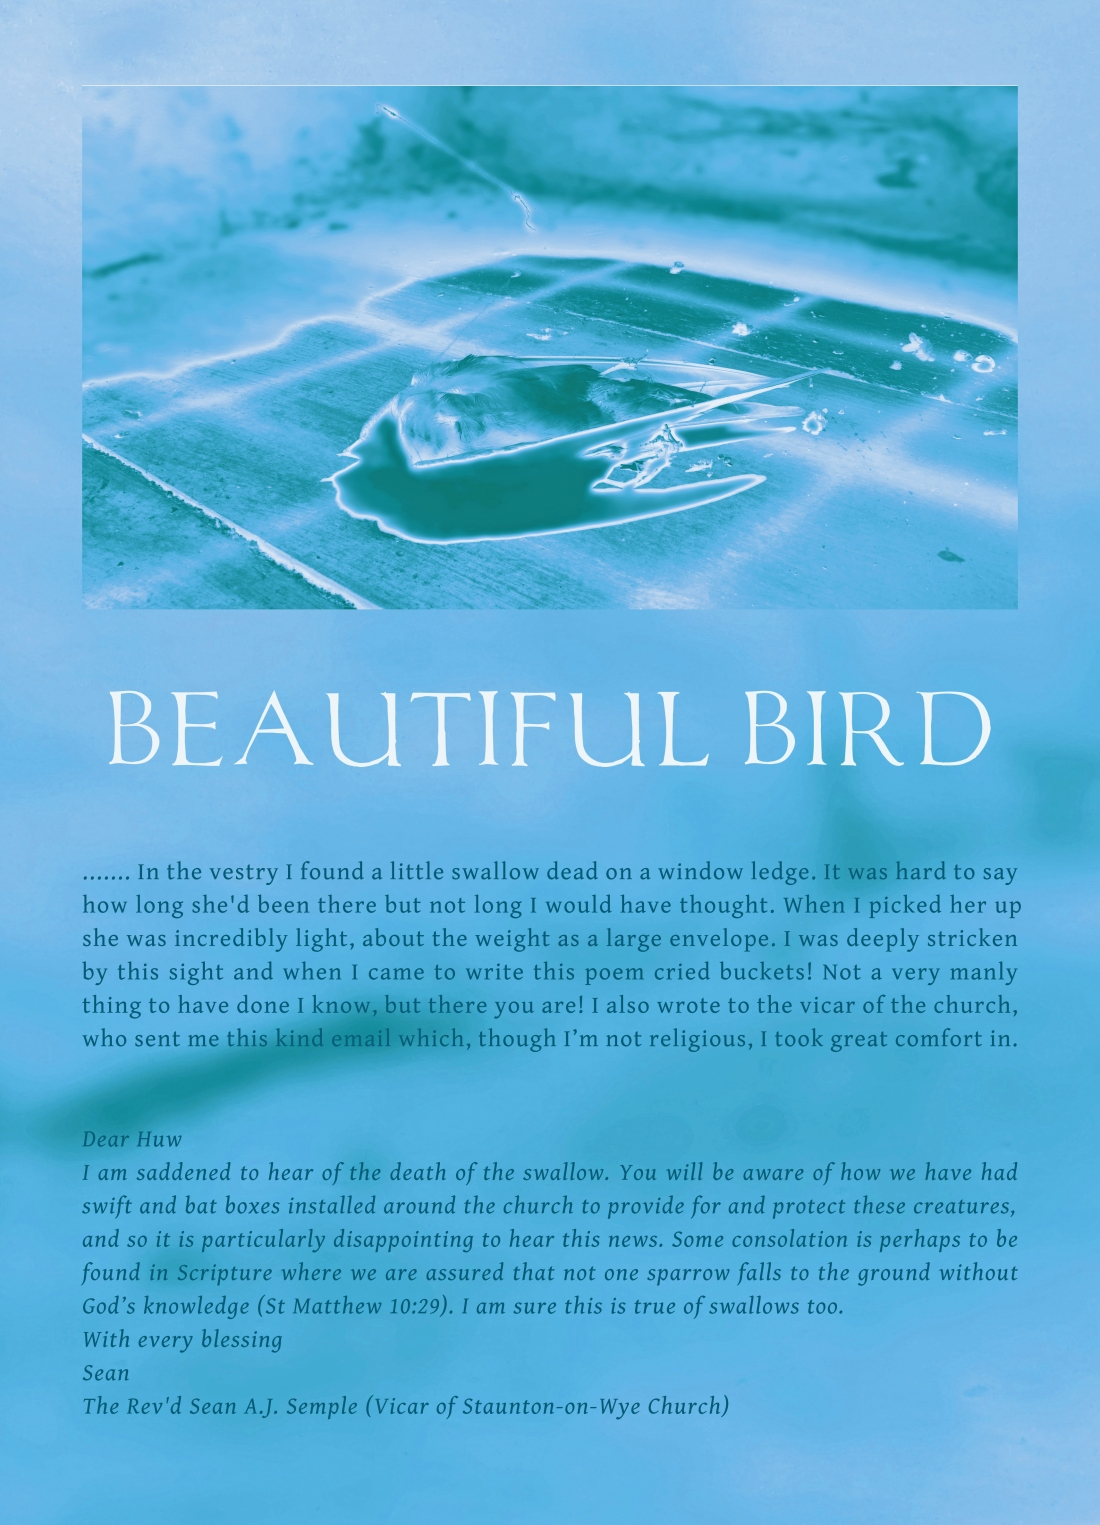 BEAUTIFUL BIRD - TITLE PAGE